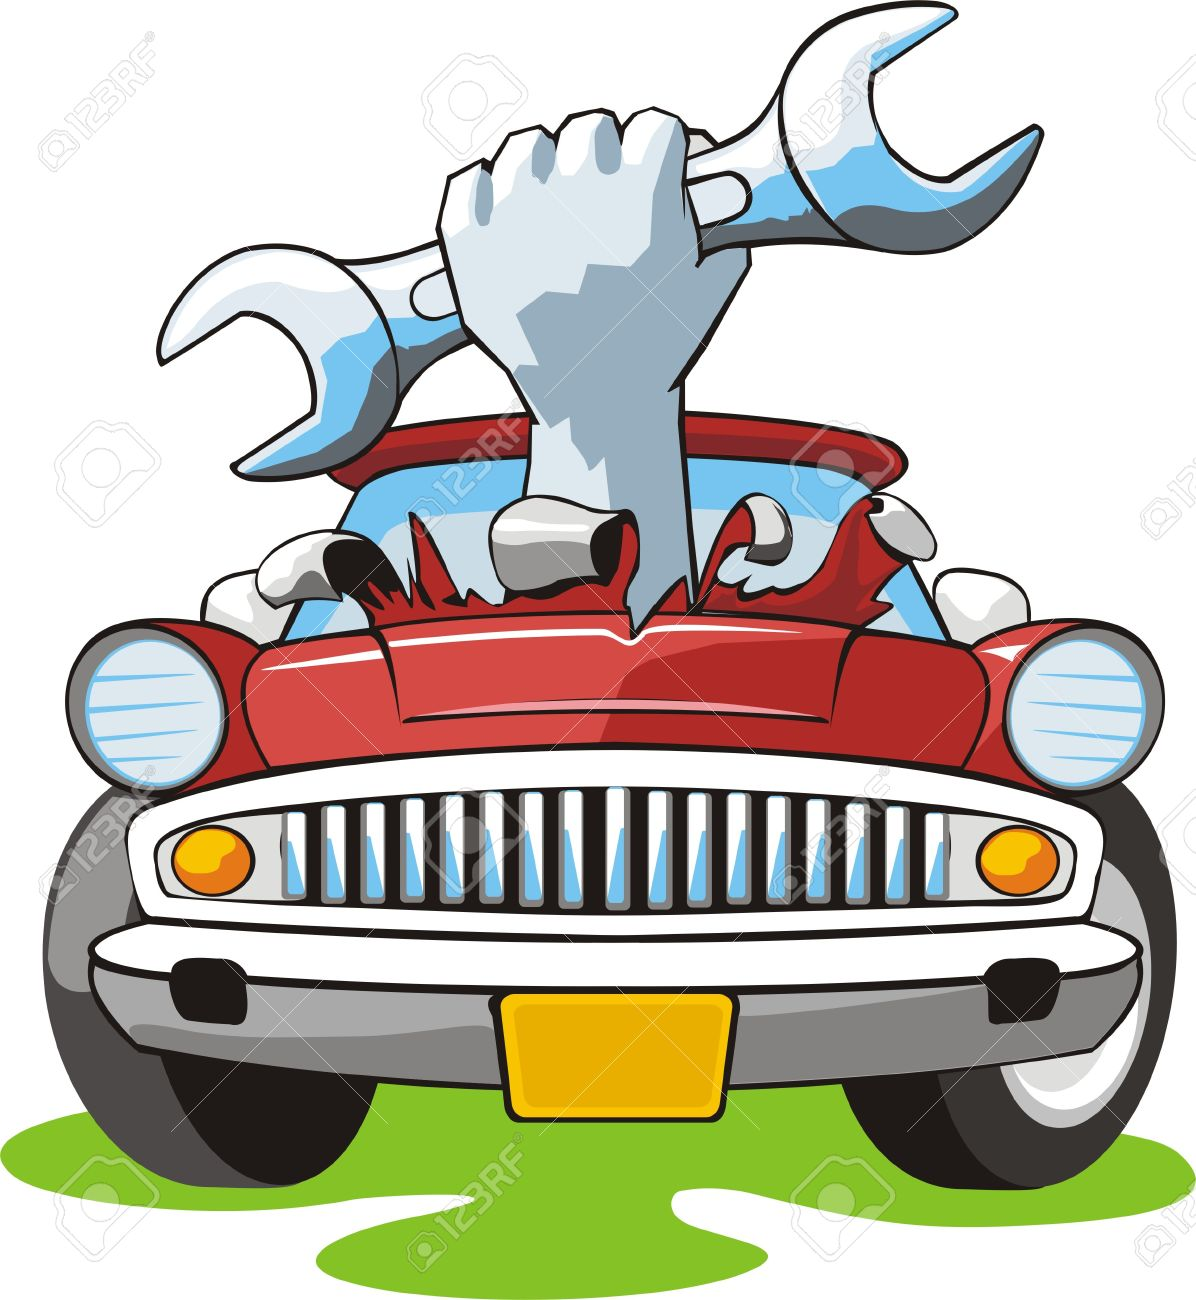 Clipart car engine.